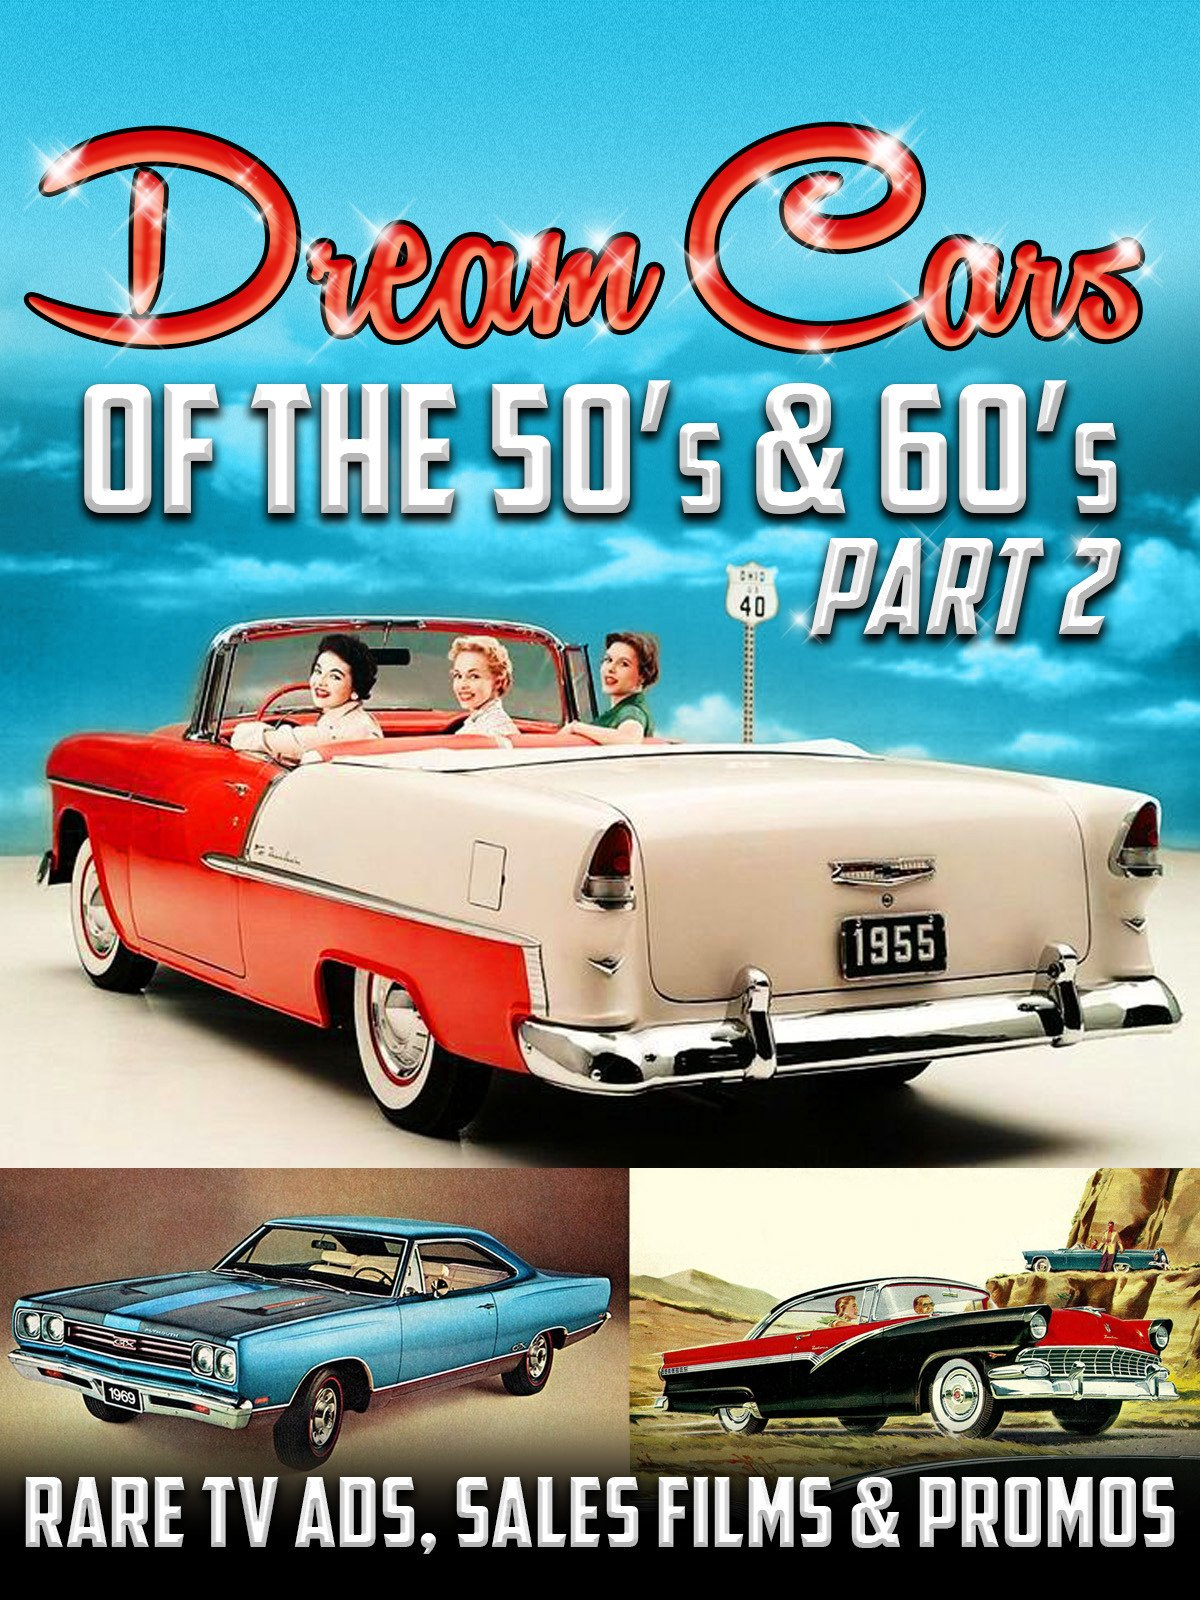 Dream Cars of the 50's & 60's Part Two...Rare TV Ads, Sales Films & Promos